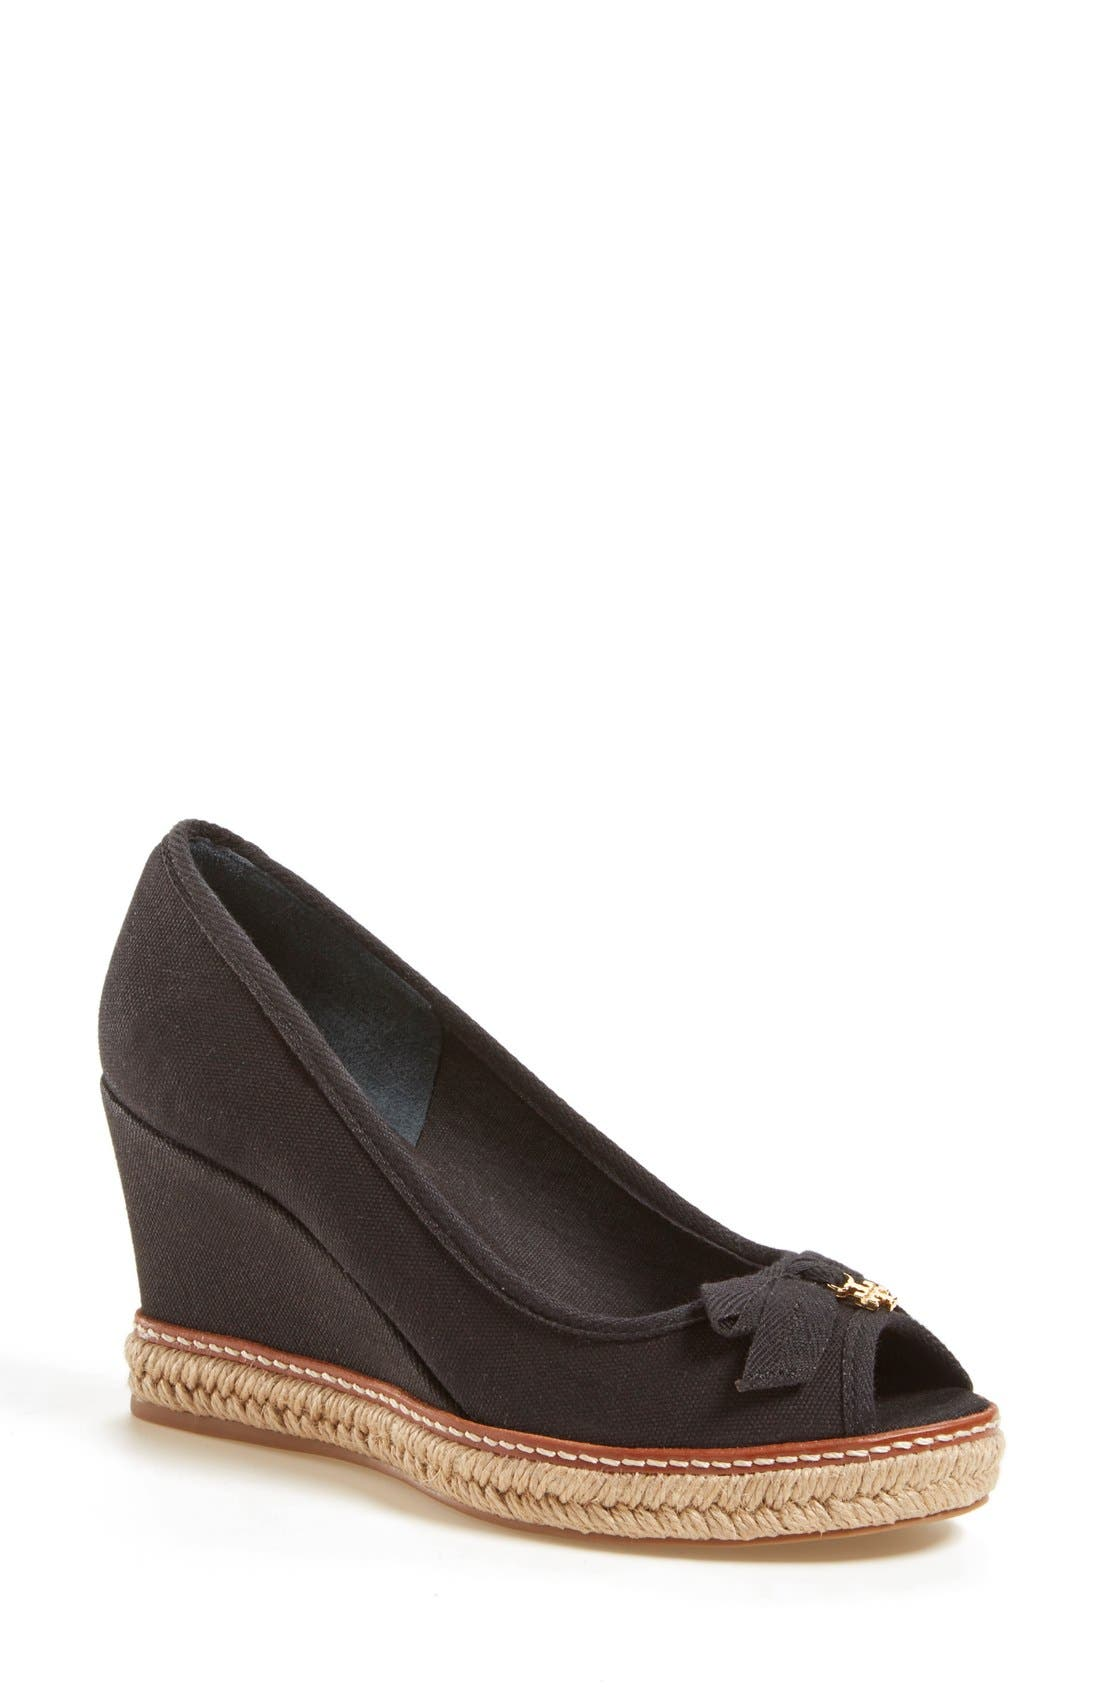 'Jackie 2' Peep Toe Wedge,                         Main,                         color, Black Canvas/ Grosgrain